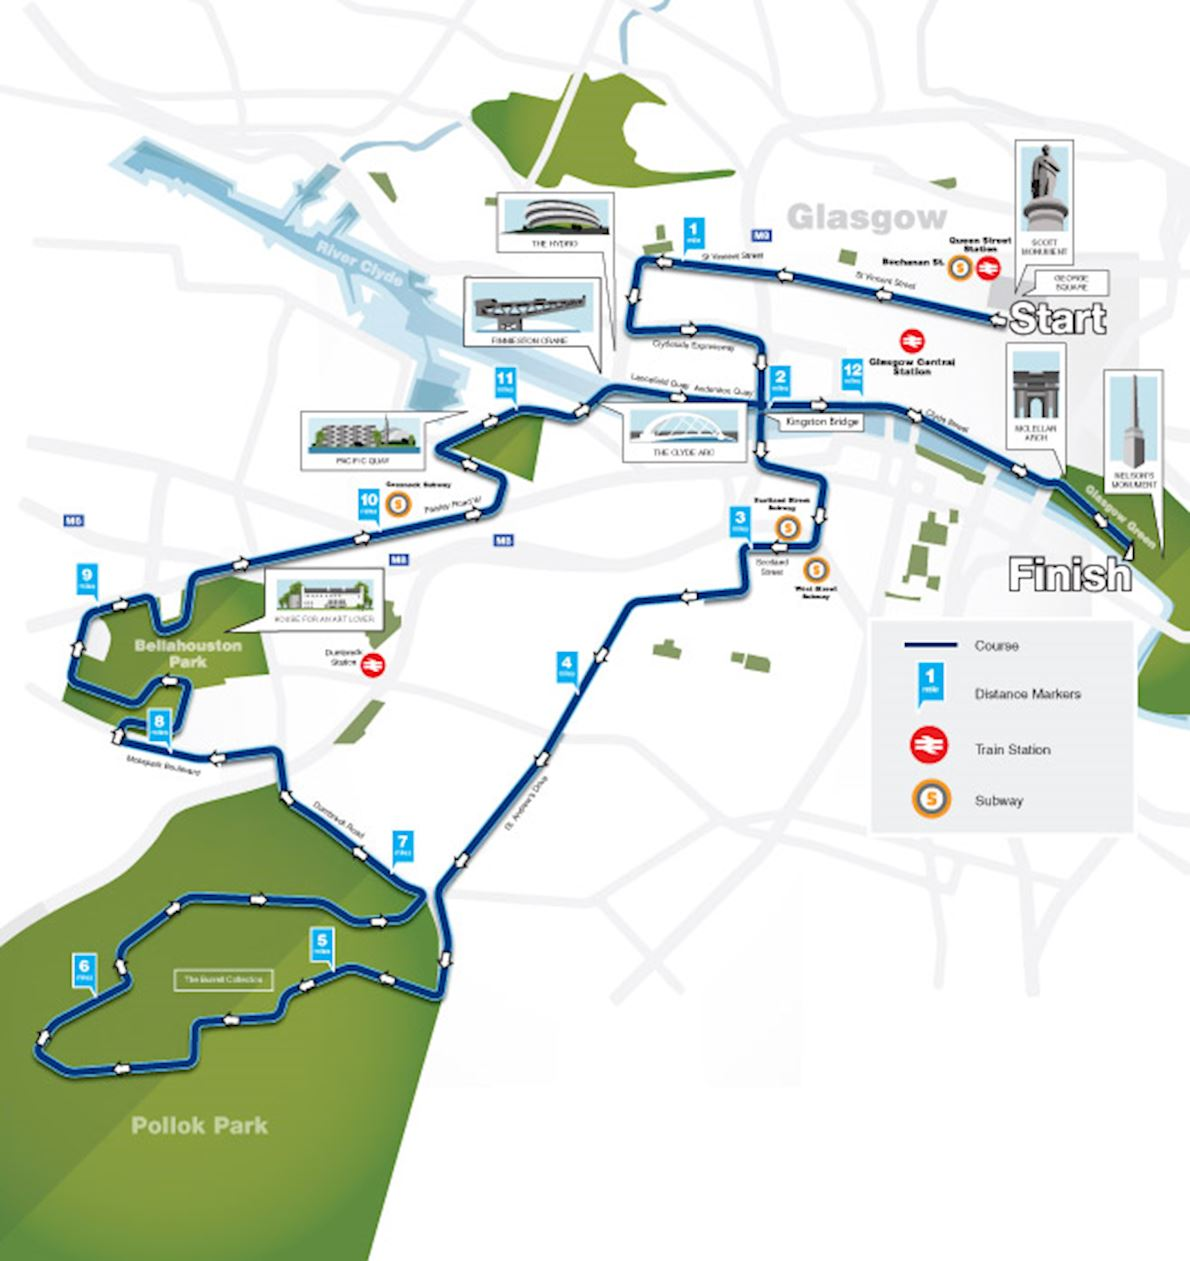 Glasgow Half Marathon Route Map